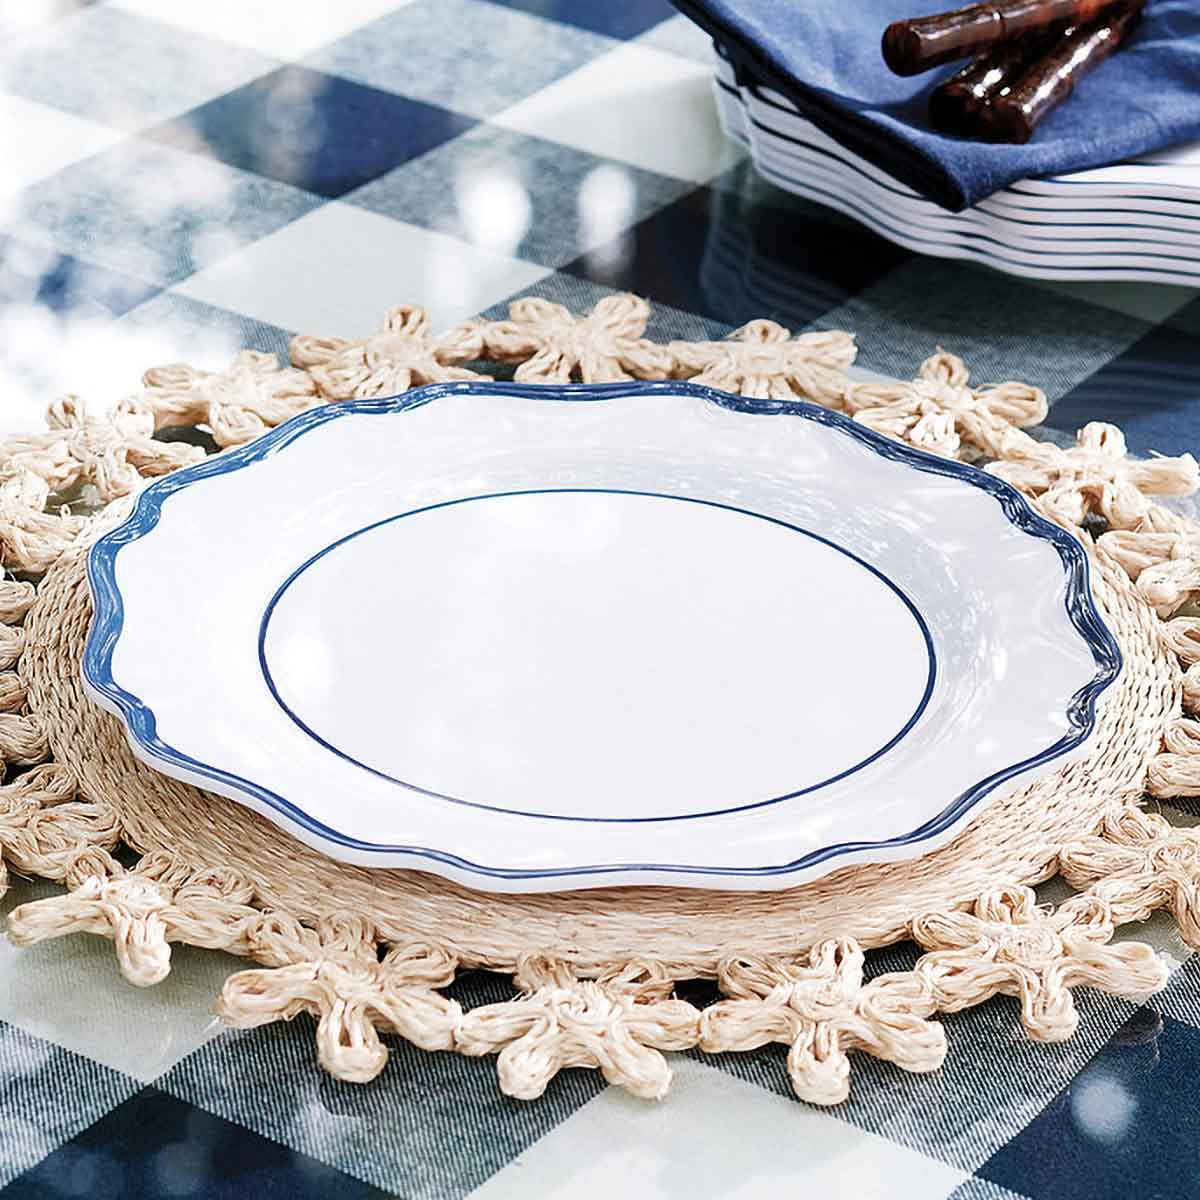 Scalloped Melamine Dinner Plates on placemat